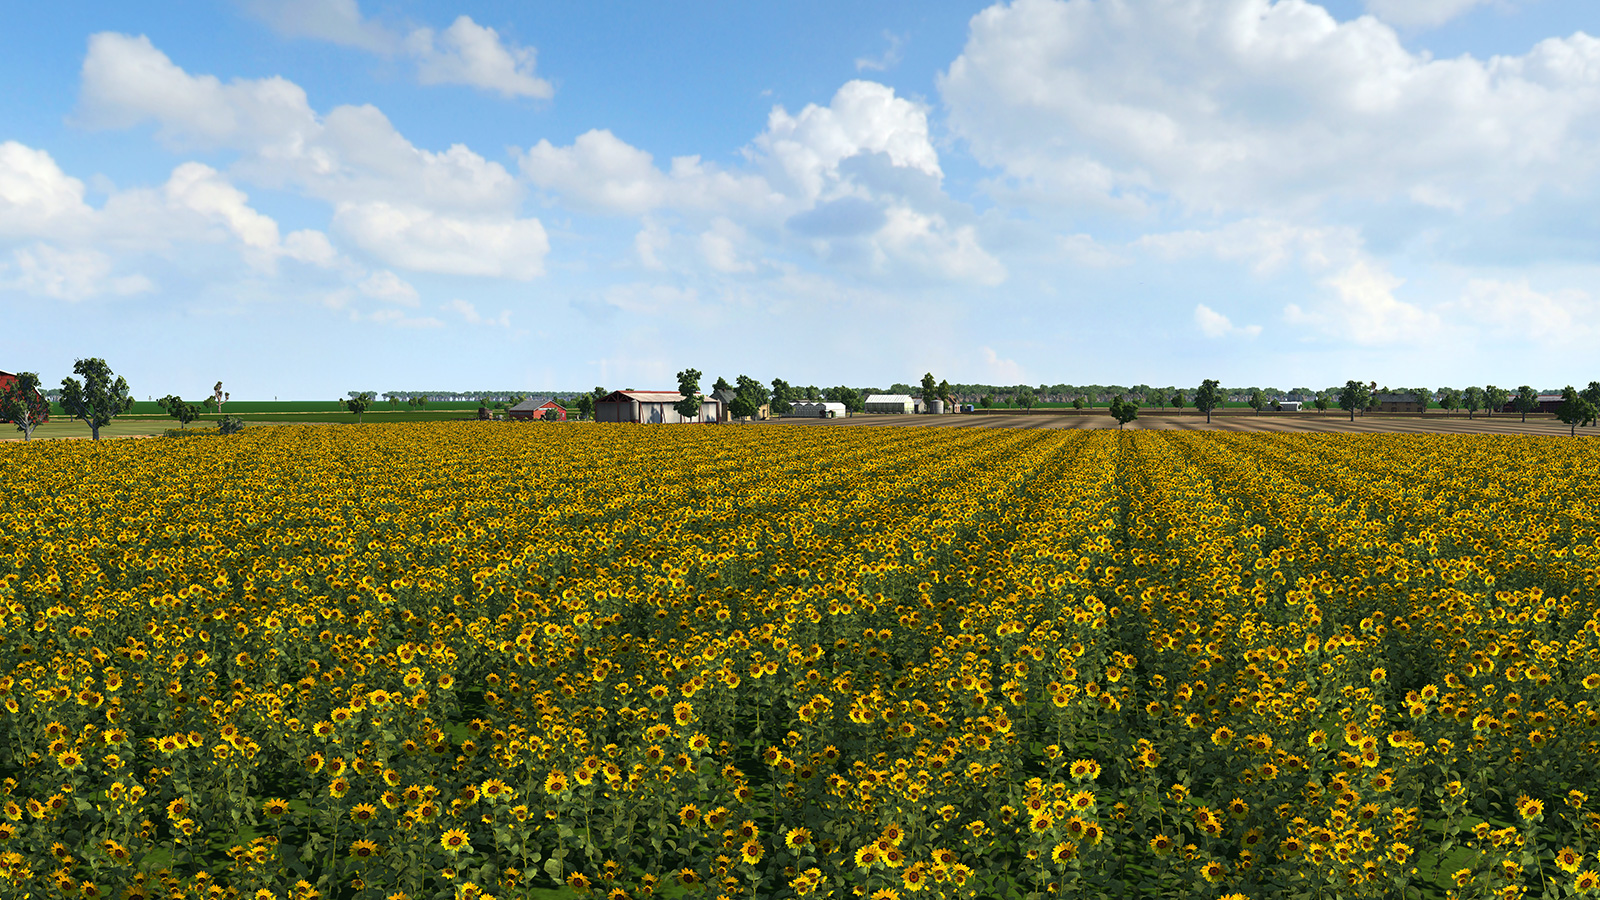 SunflowerField2.jpg